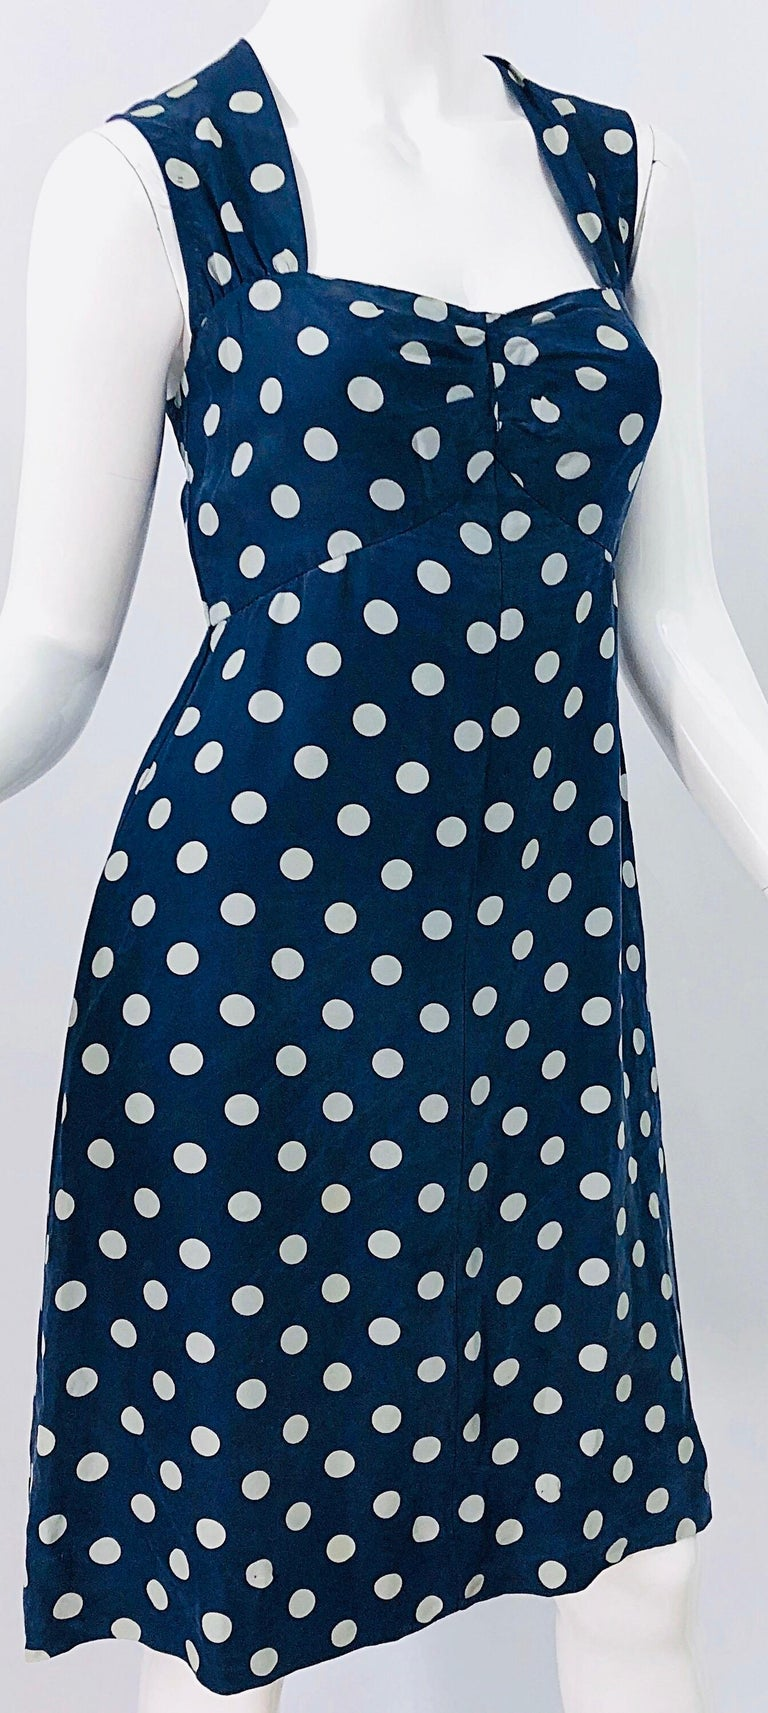 Vintage Yves Saint Laurent 1980s Navy Blue + White Polka Dot Silk 80s Dress YSL For Sale 1